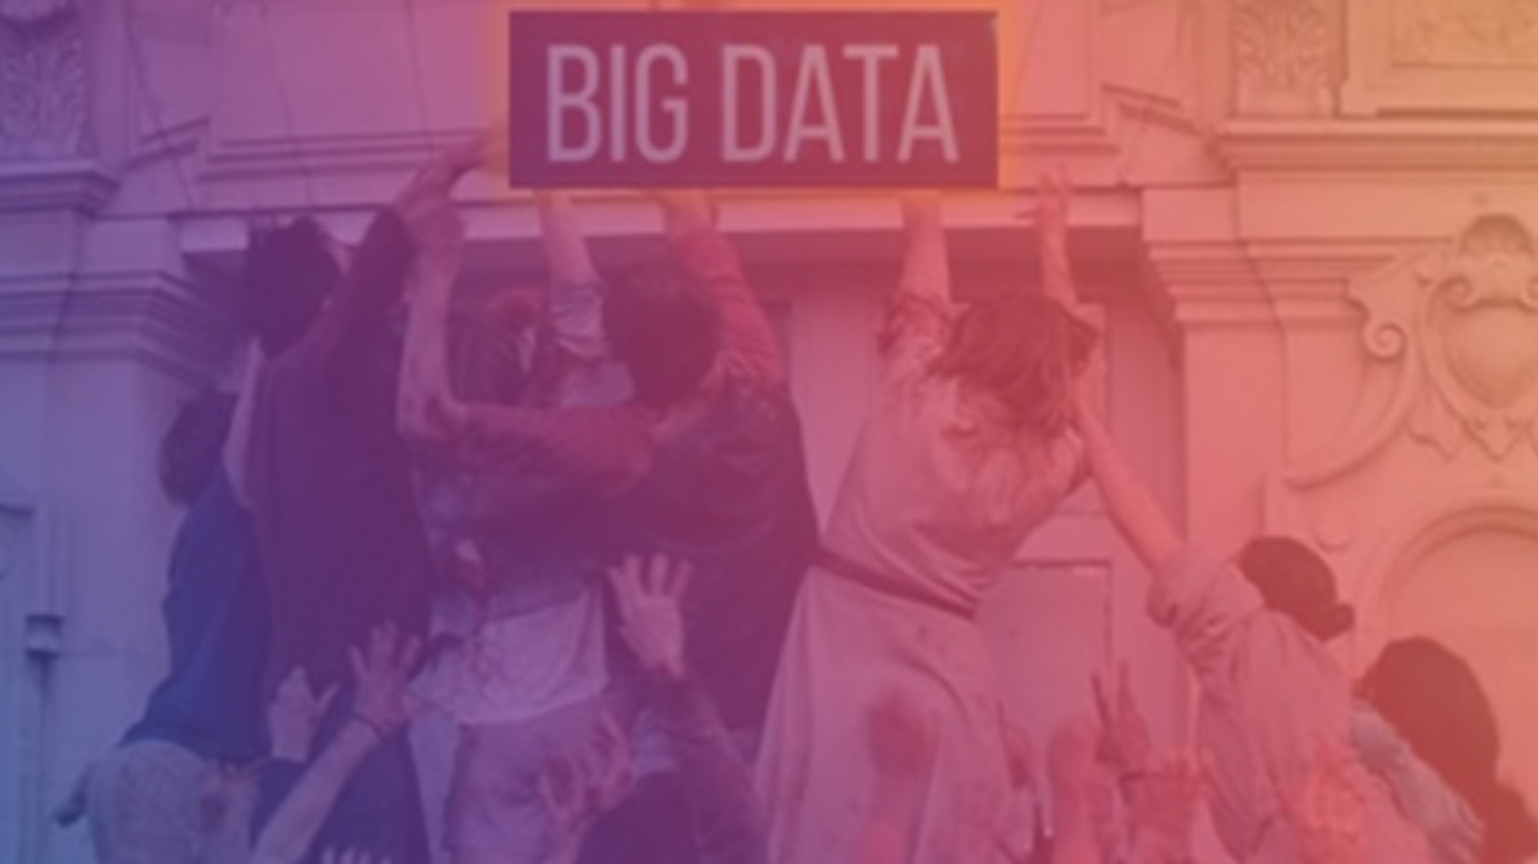 La course à la Big Data